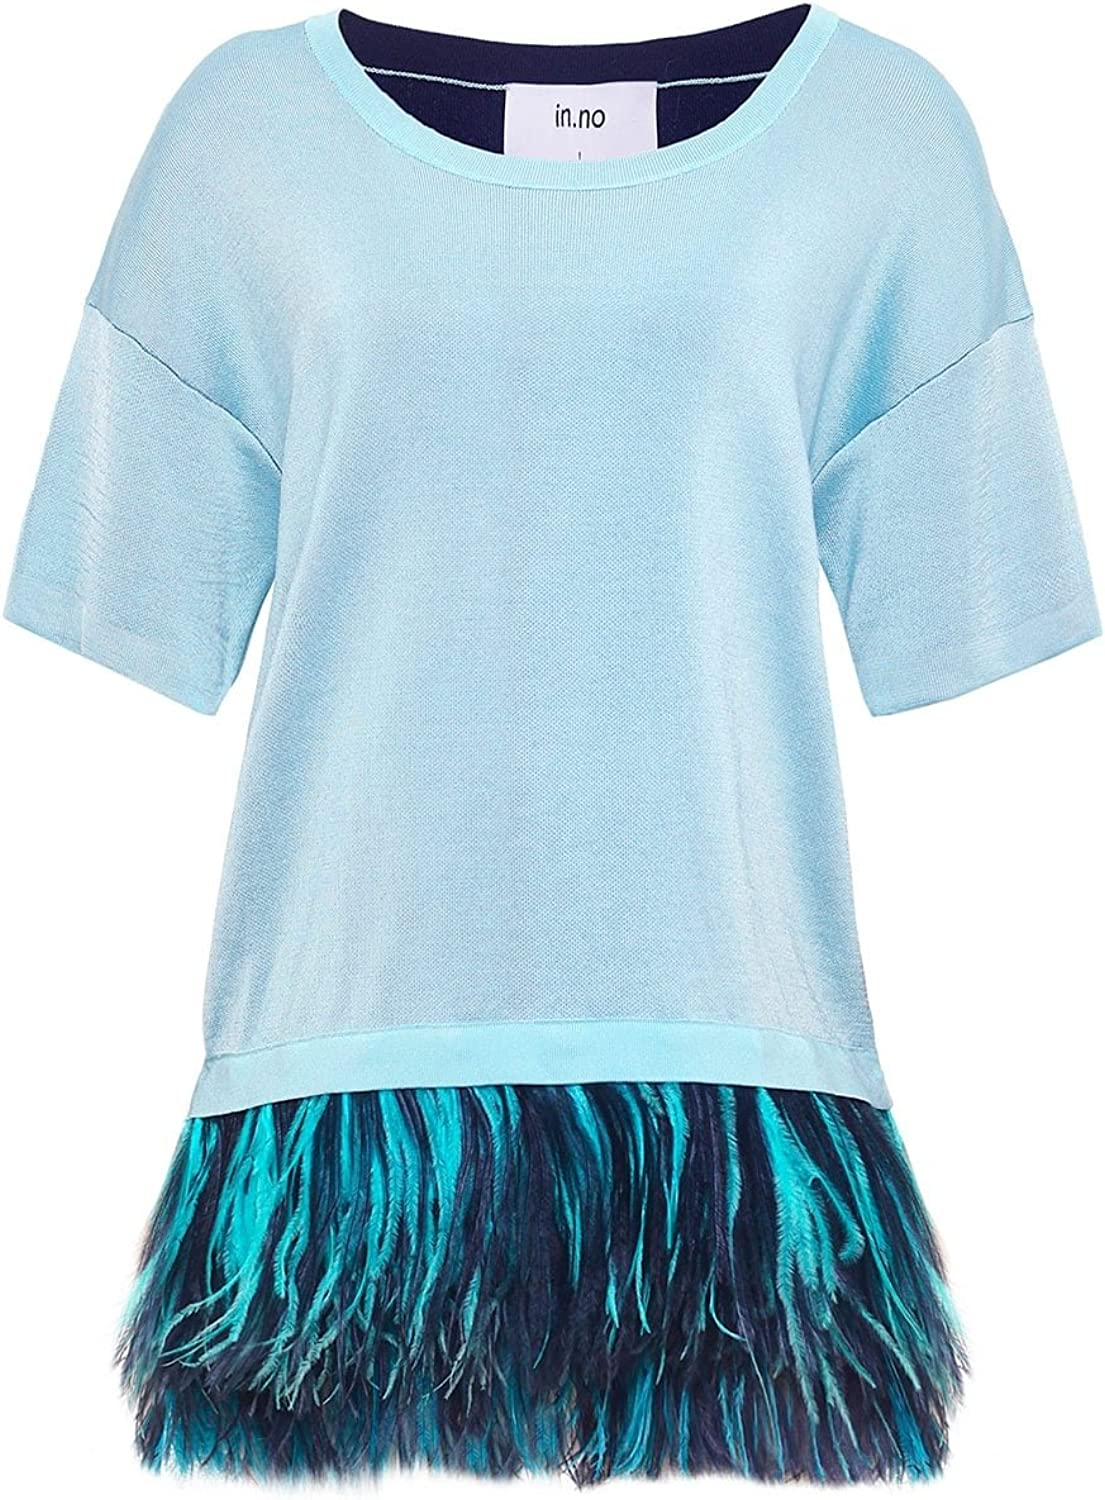 In.no Women's Cashmere Blend Adele Feather Trim Top Navy